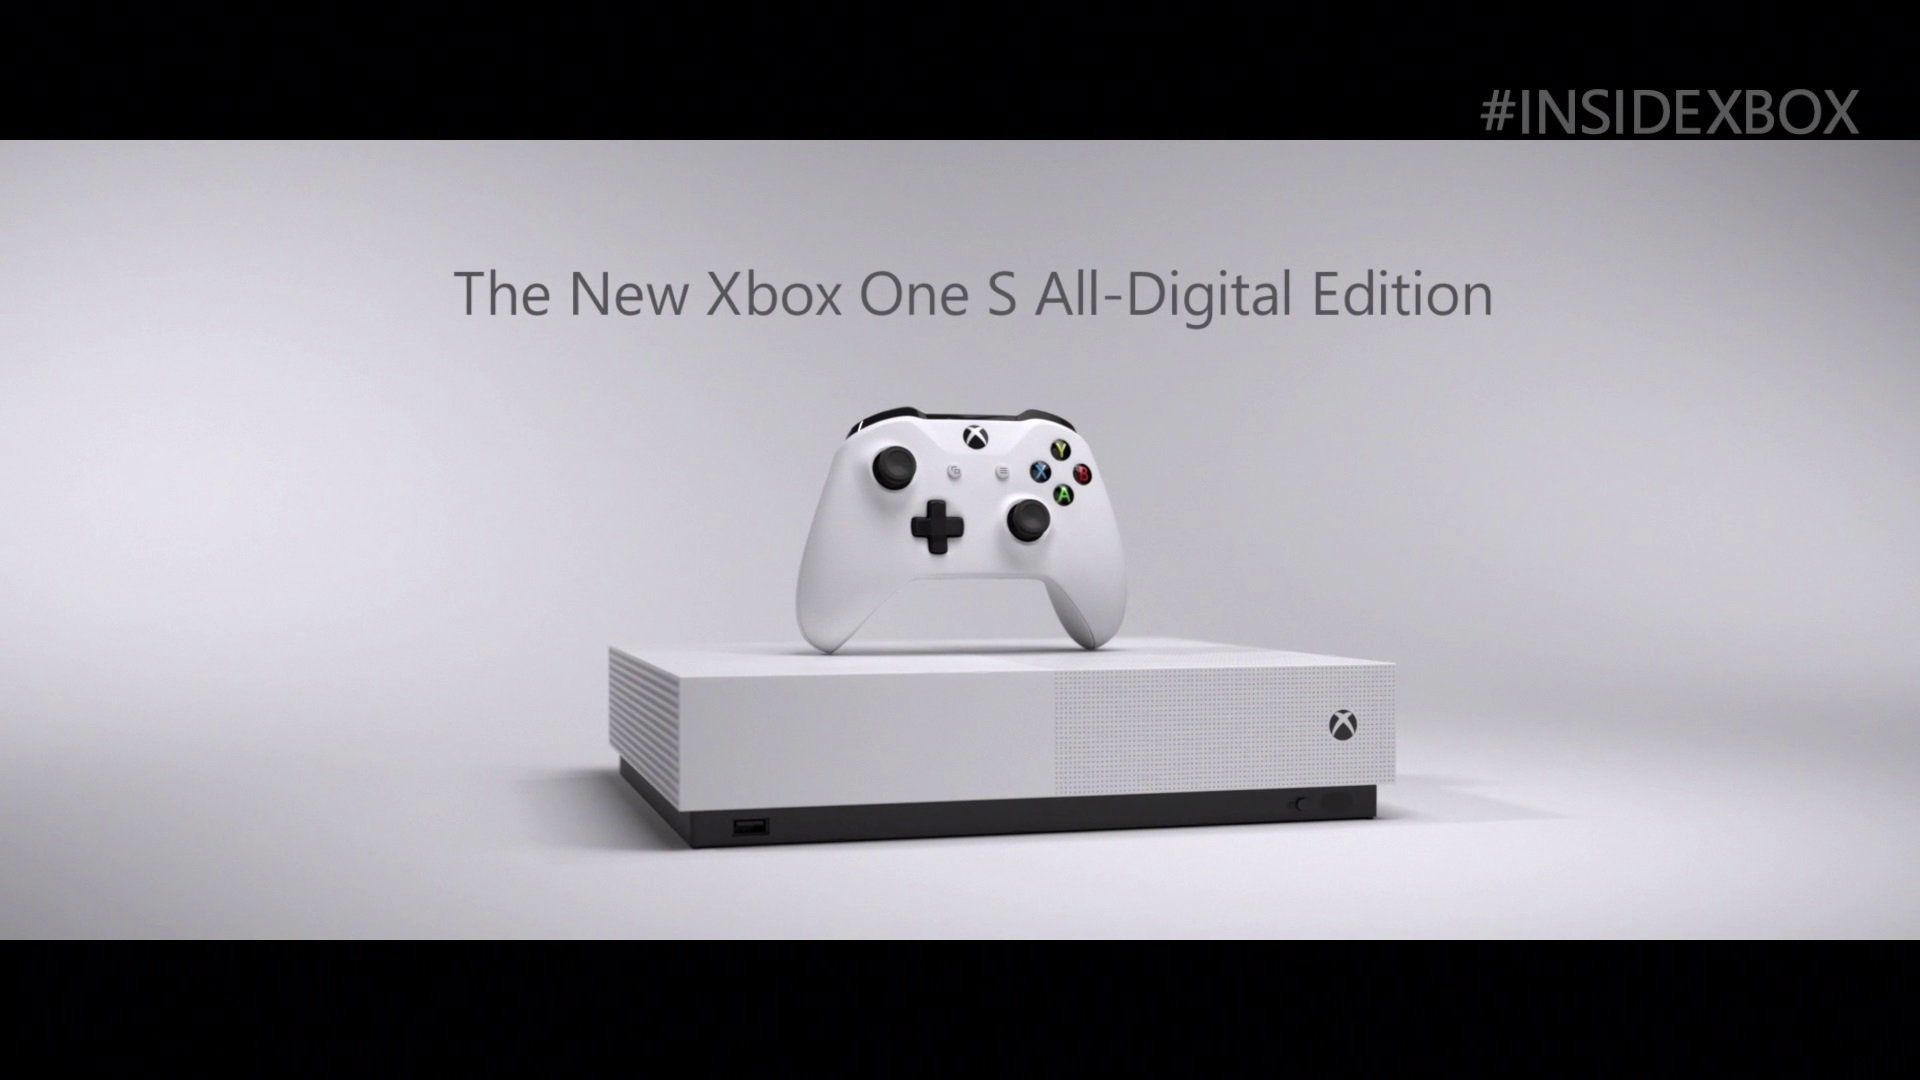 Xbox One S All Digital Announced At Inside Xbox Xbox One S Xbox One Xbox